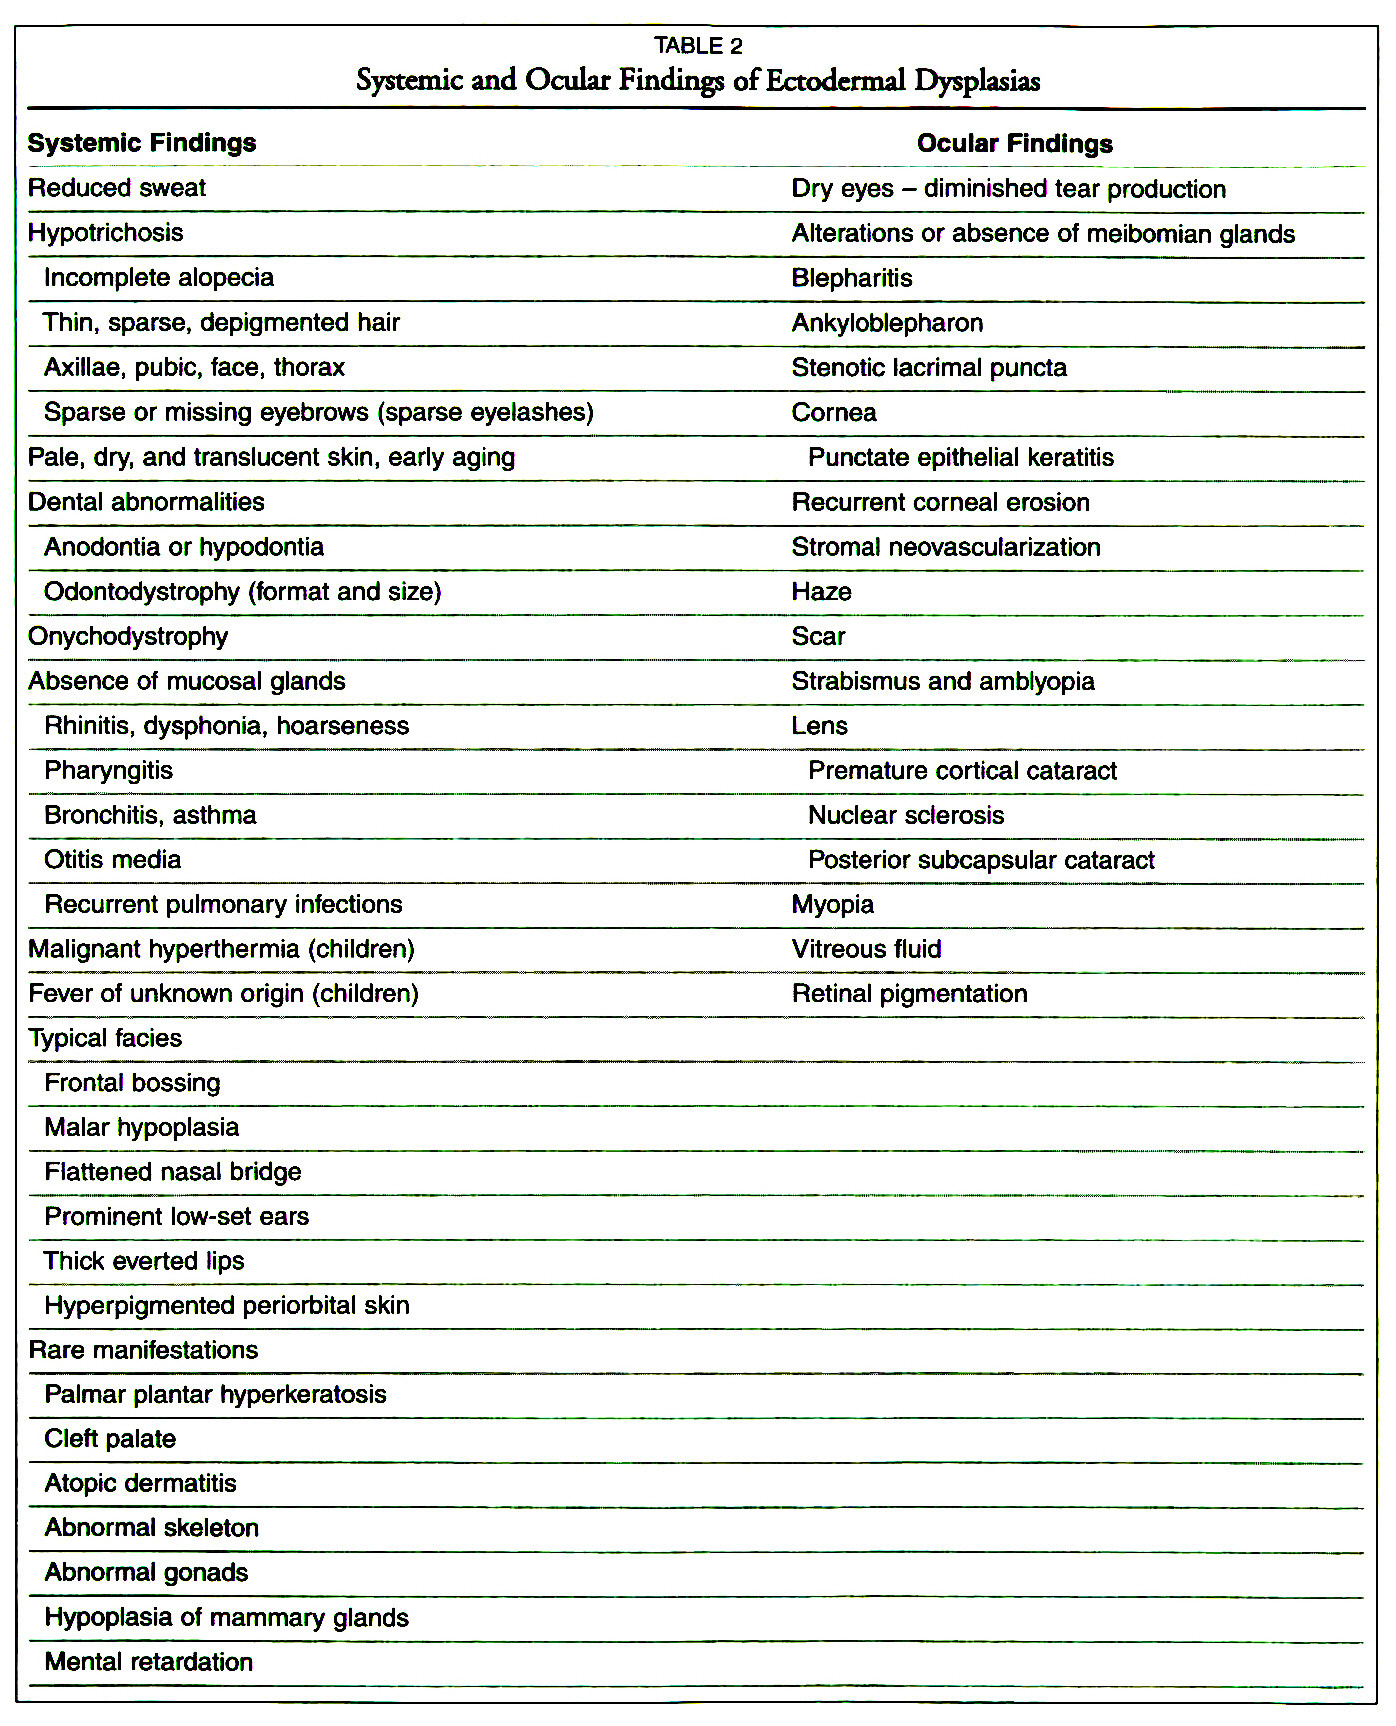 TABLE 2Systemic and Ocular Findings of Ectodermal Dysplasias